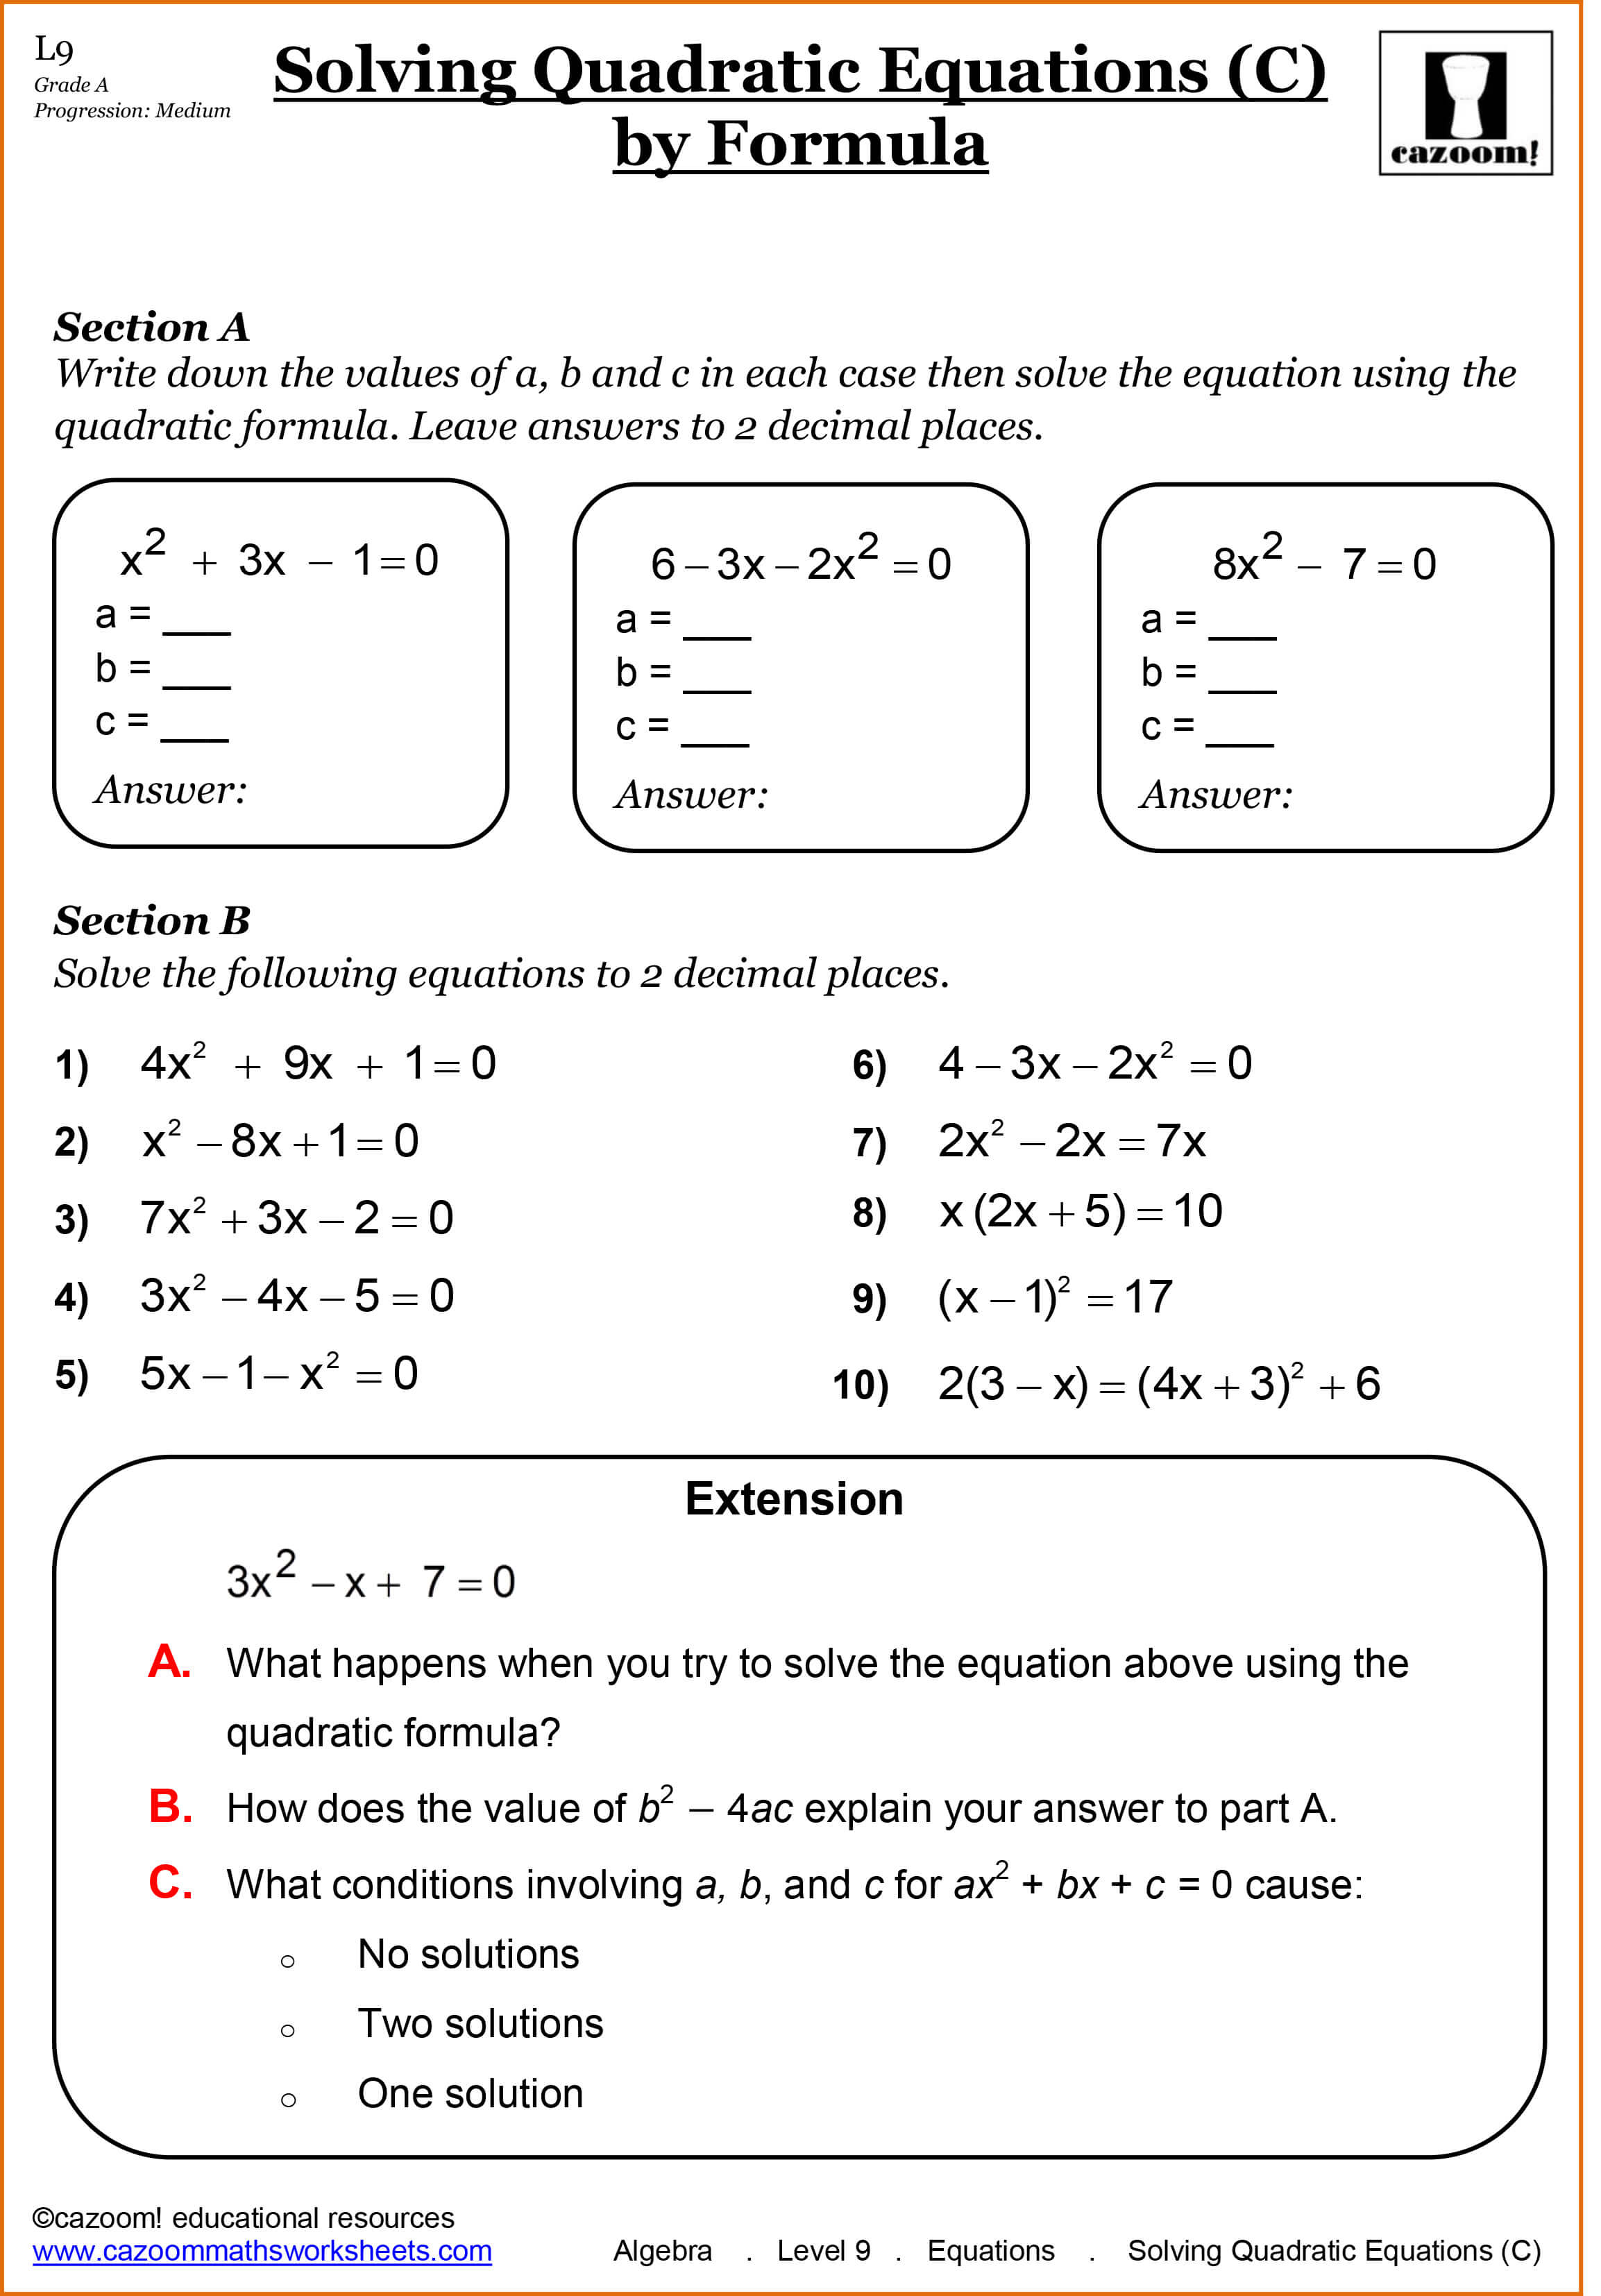 66 Year 7 Free Printable Maths Worksheets Printable